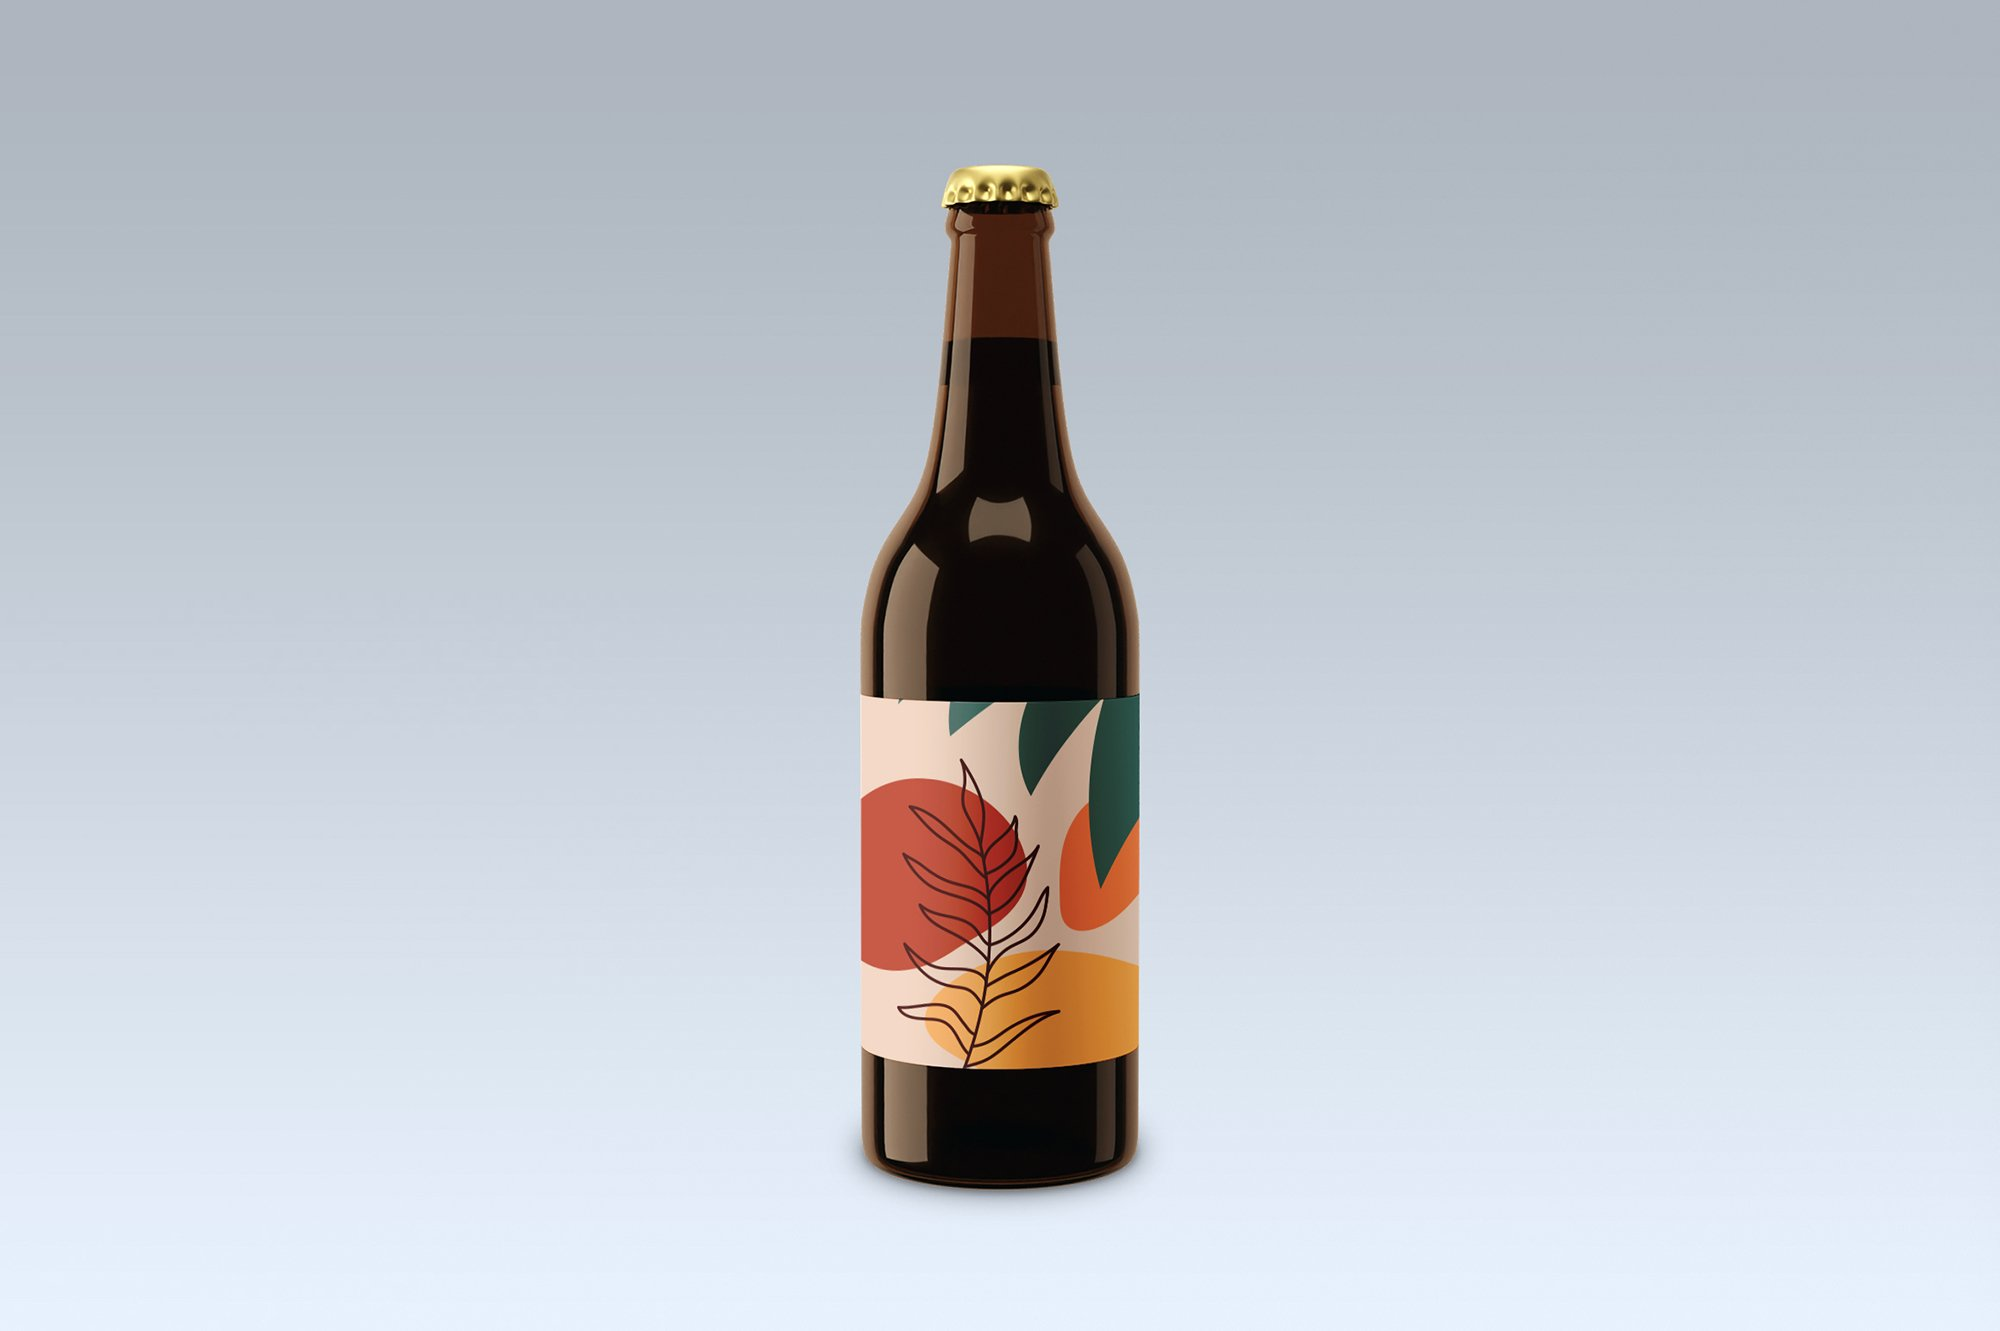 Beer bottle, mock up. example image 2